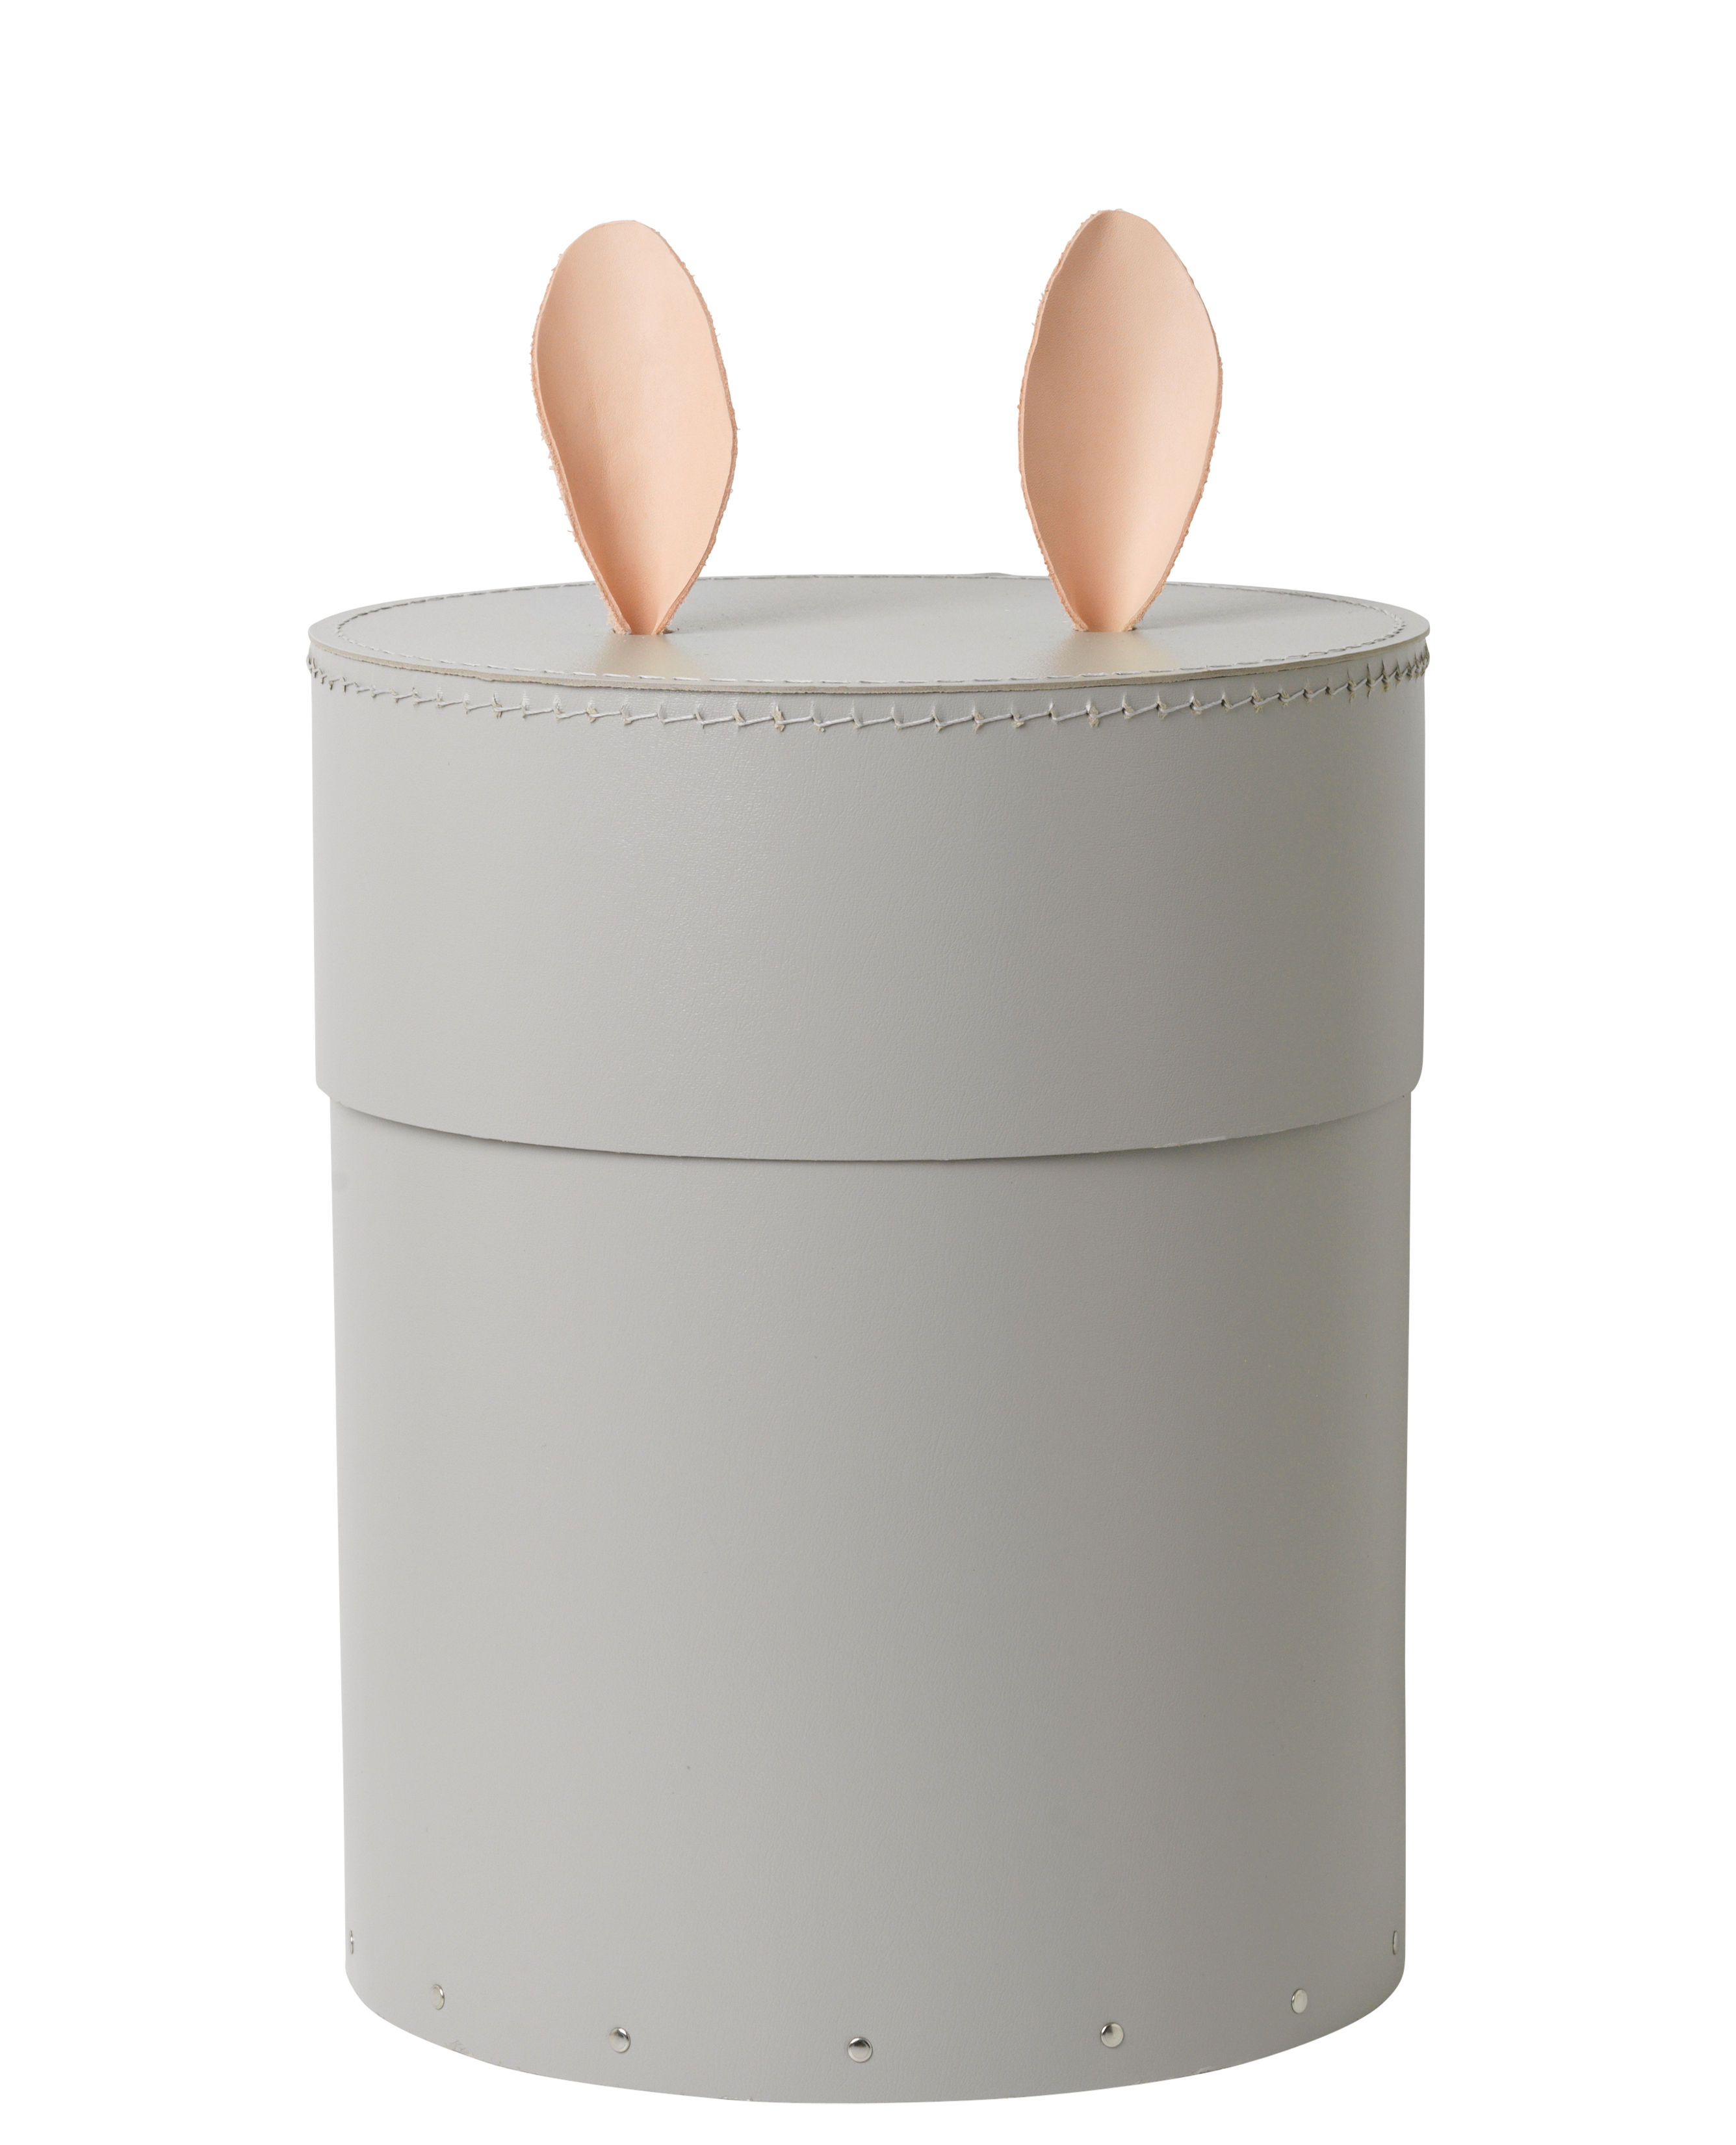 Furniture - Kids Furniture - Rabbit Box - / Ø 30 x H 35 cm by Ferm Living - Gris / Cuir naturel - Cardboard, Leather